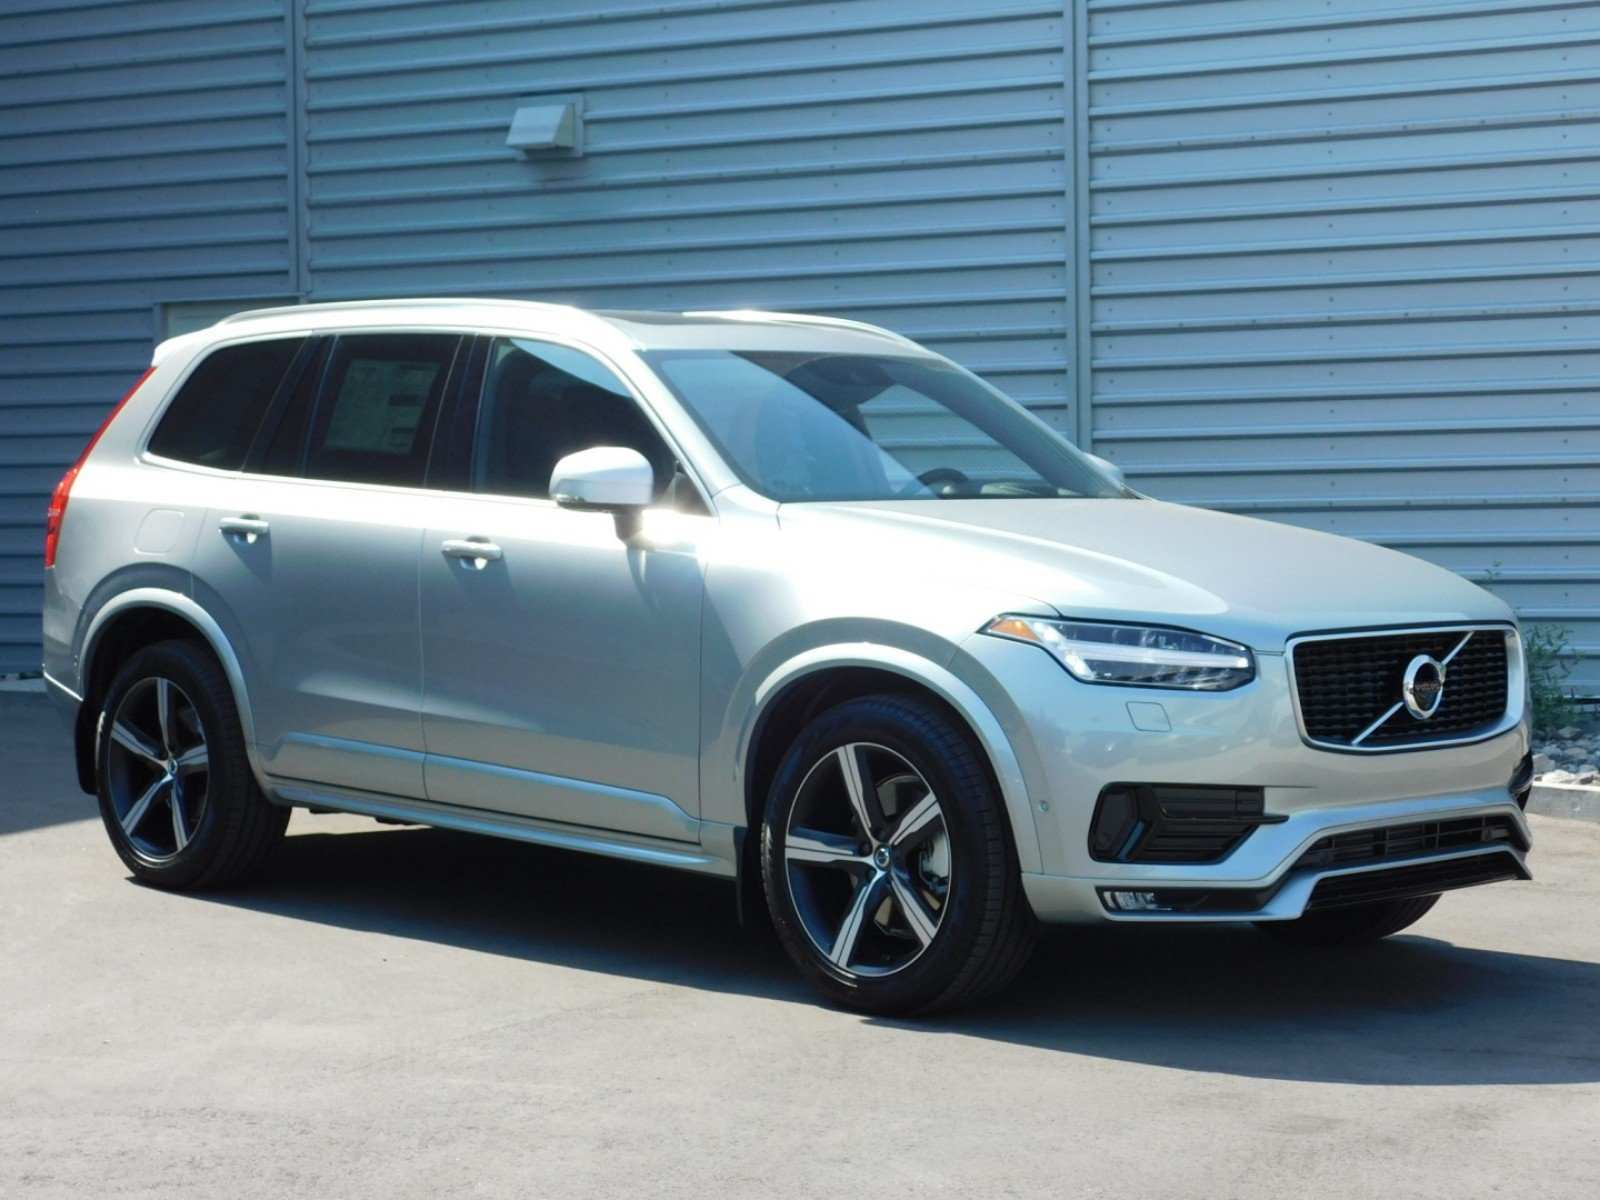 21 A Volvo Cx90 2019 Price Design And Review